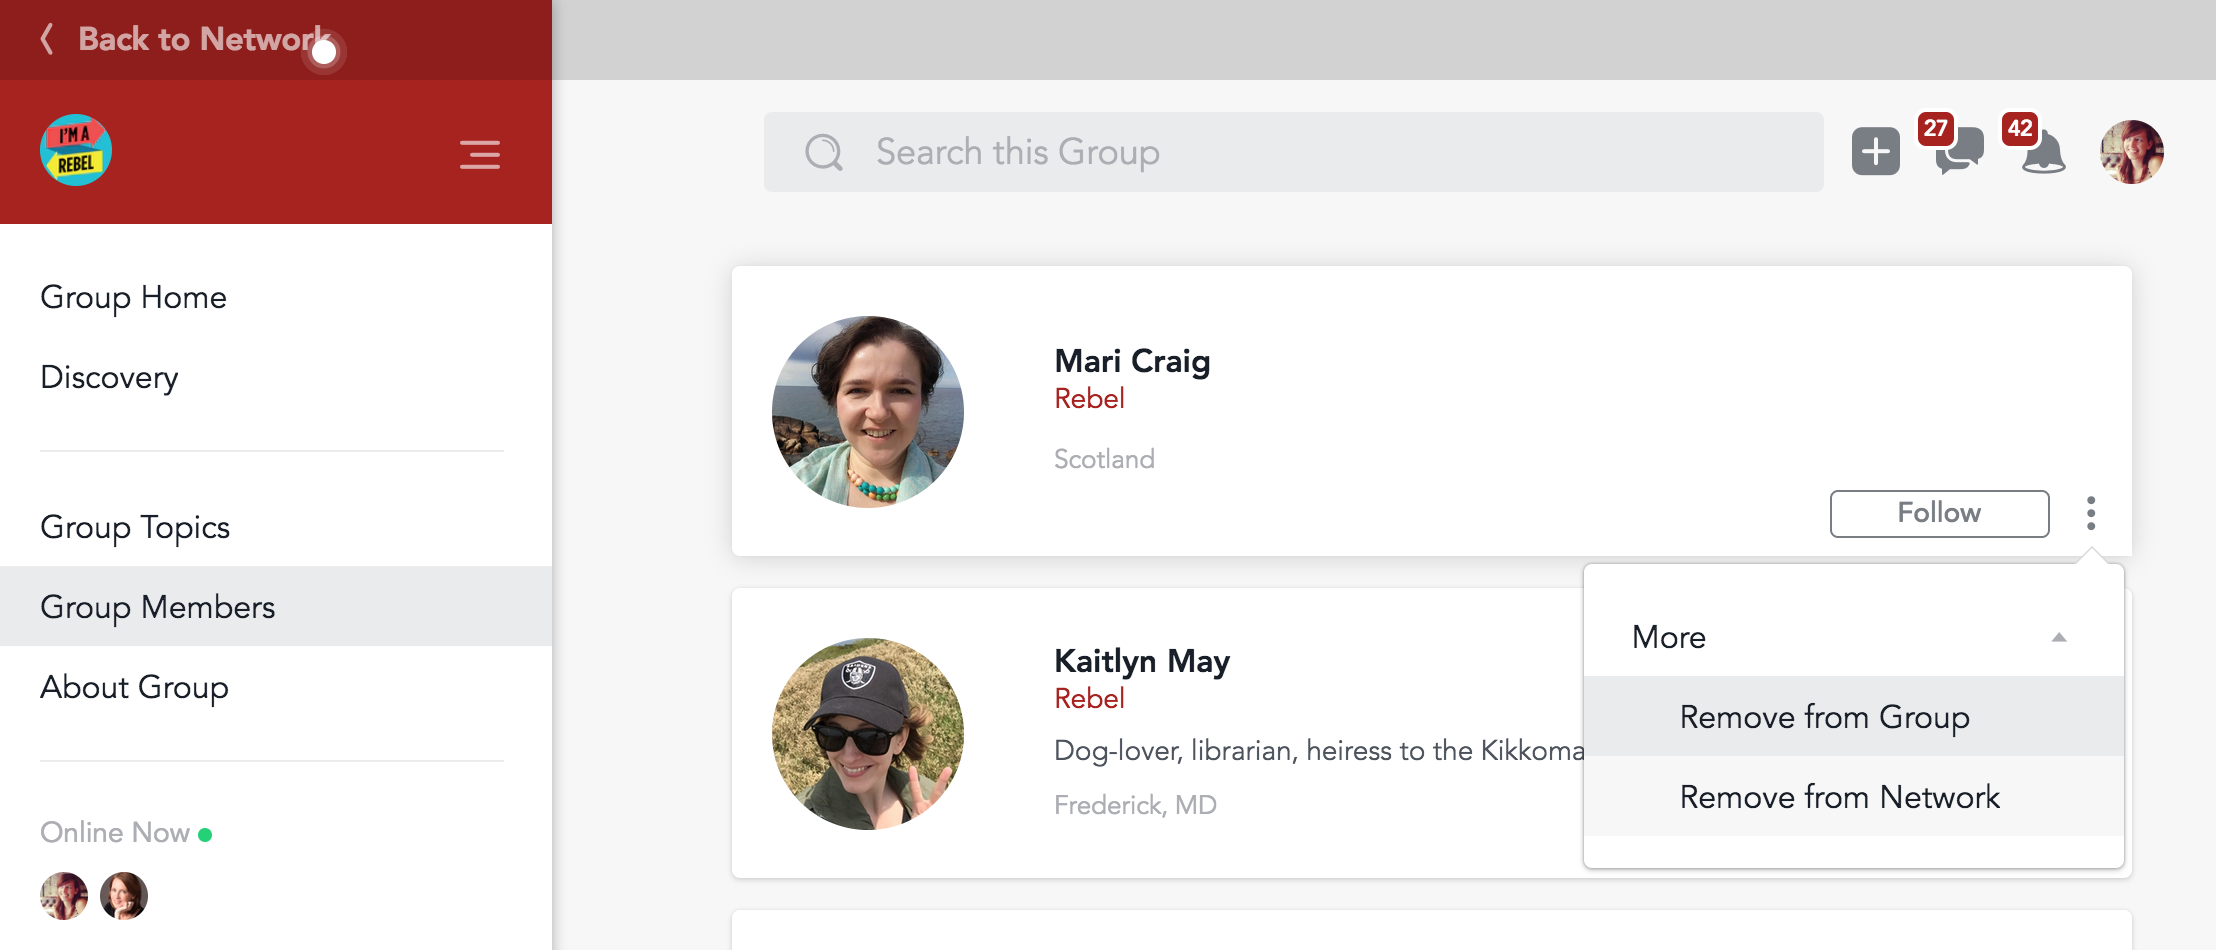 Screen_Shot_2018-10-04_at_5.20.24_PM.png